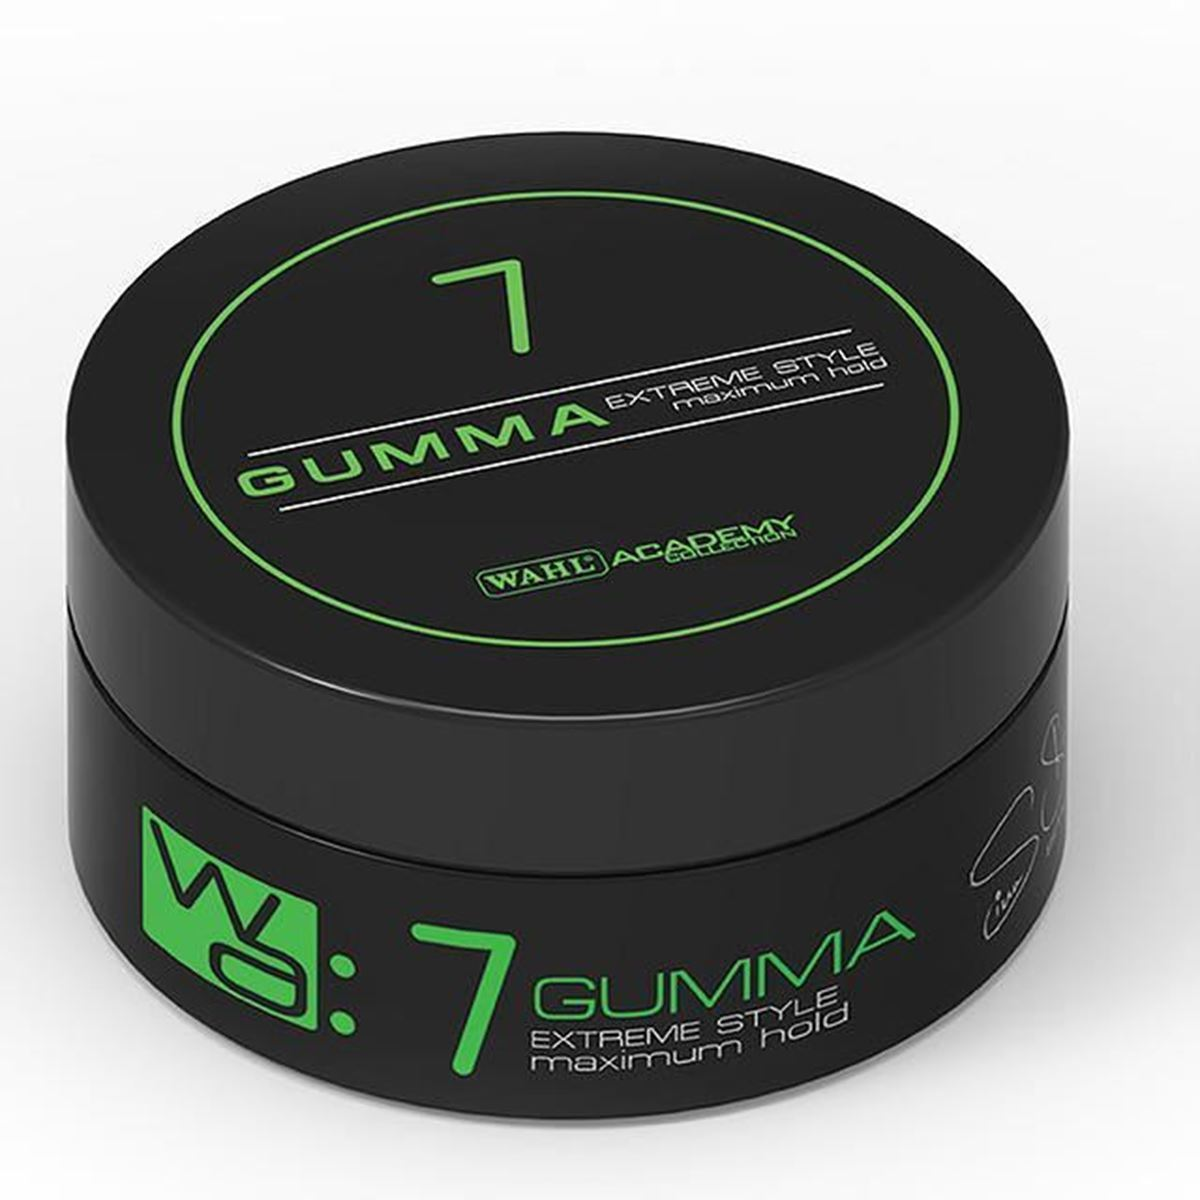 Picture of Wahl Academy Gumma 100ml